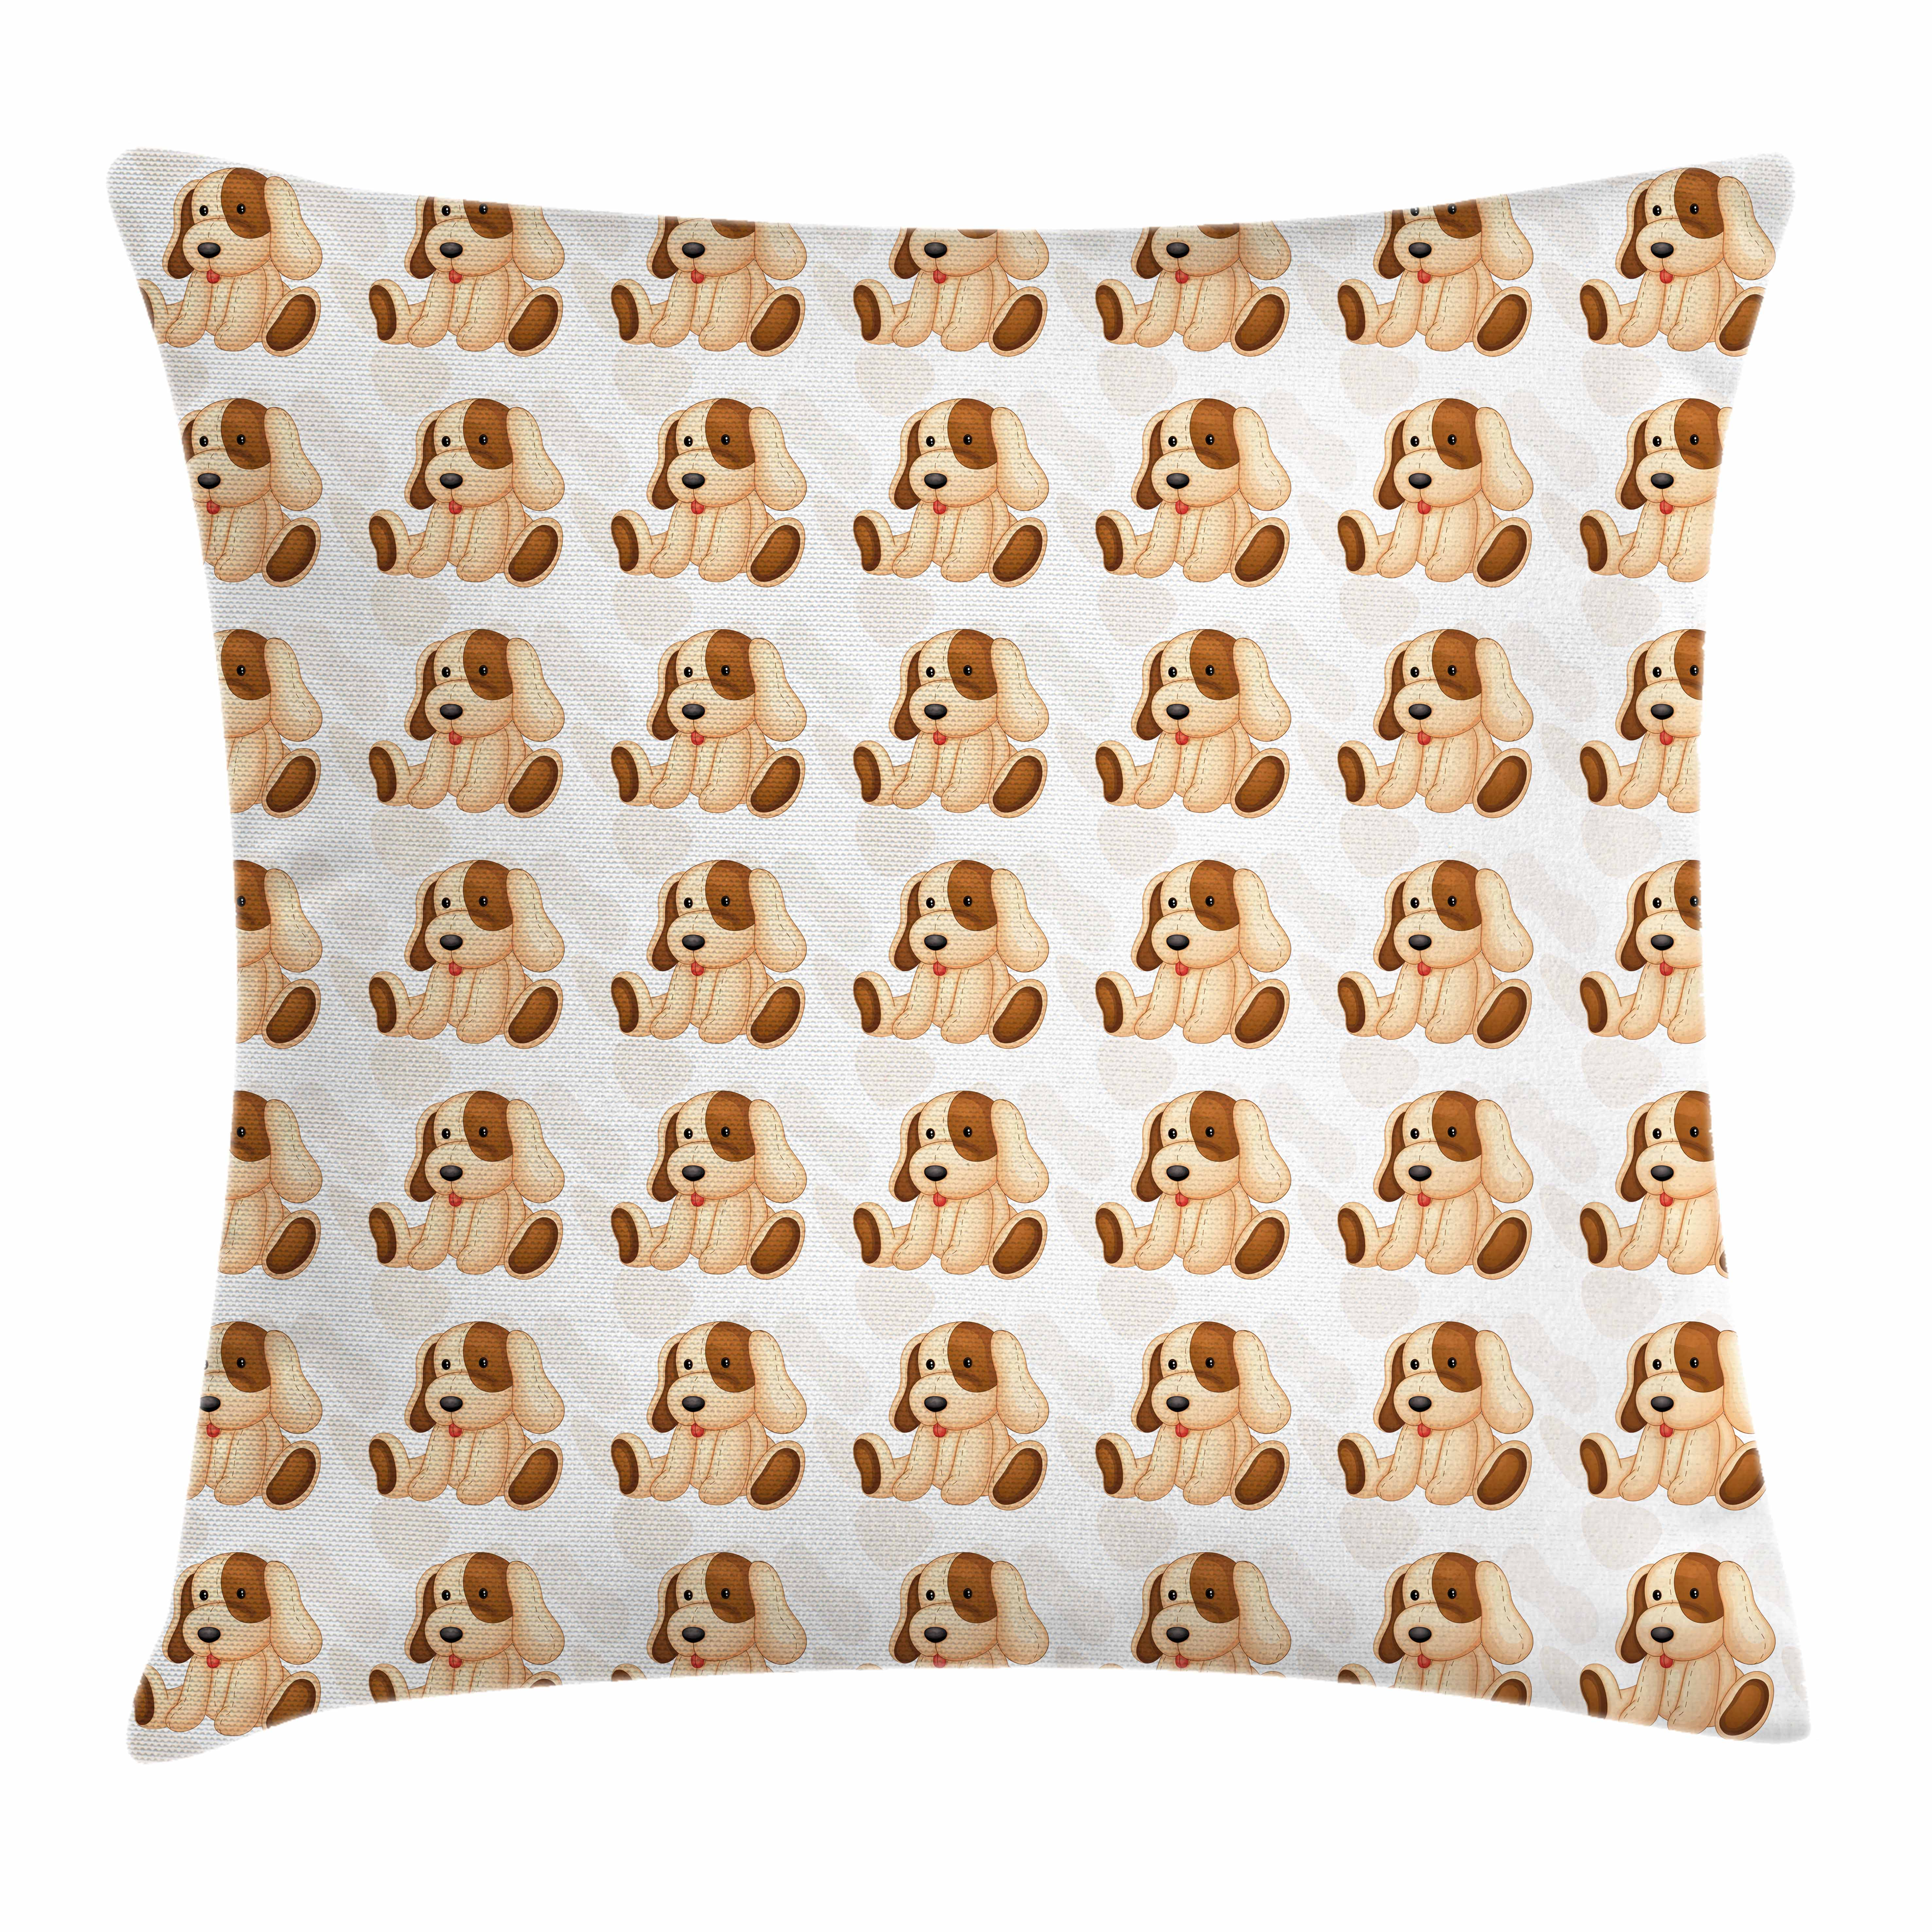 Dog Lover Throw Pillow Cushion Cover, Stuffed Toy Design Children Plaything Digitally Composed Animal Sitting Position, Decorative Square Accent Pillow Case, 16 X 16 Inches, Beige Brown, by Ambesonne